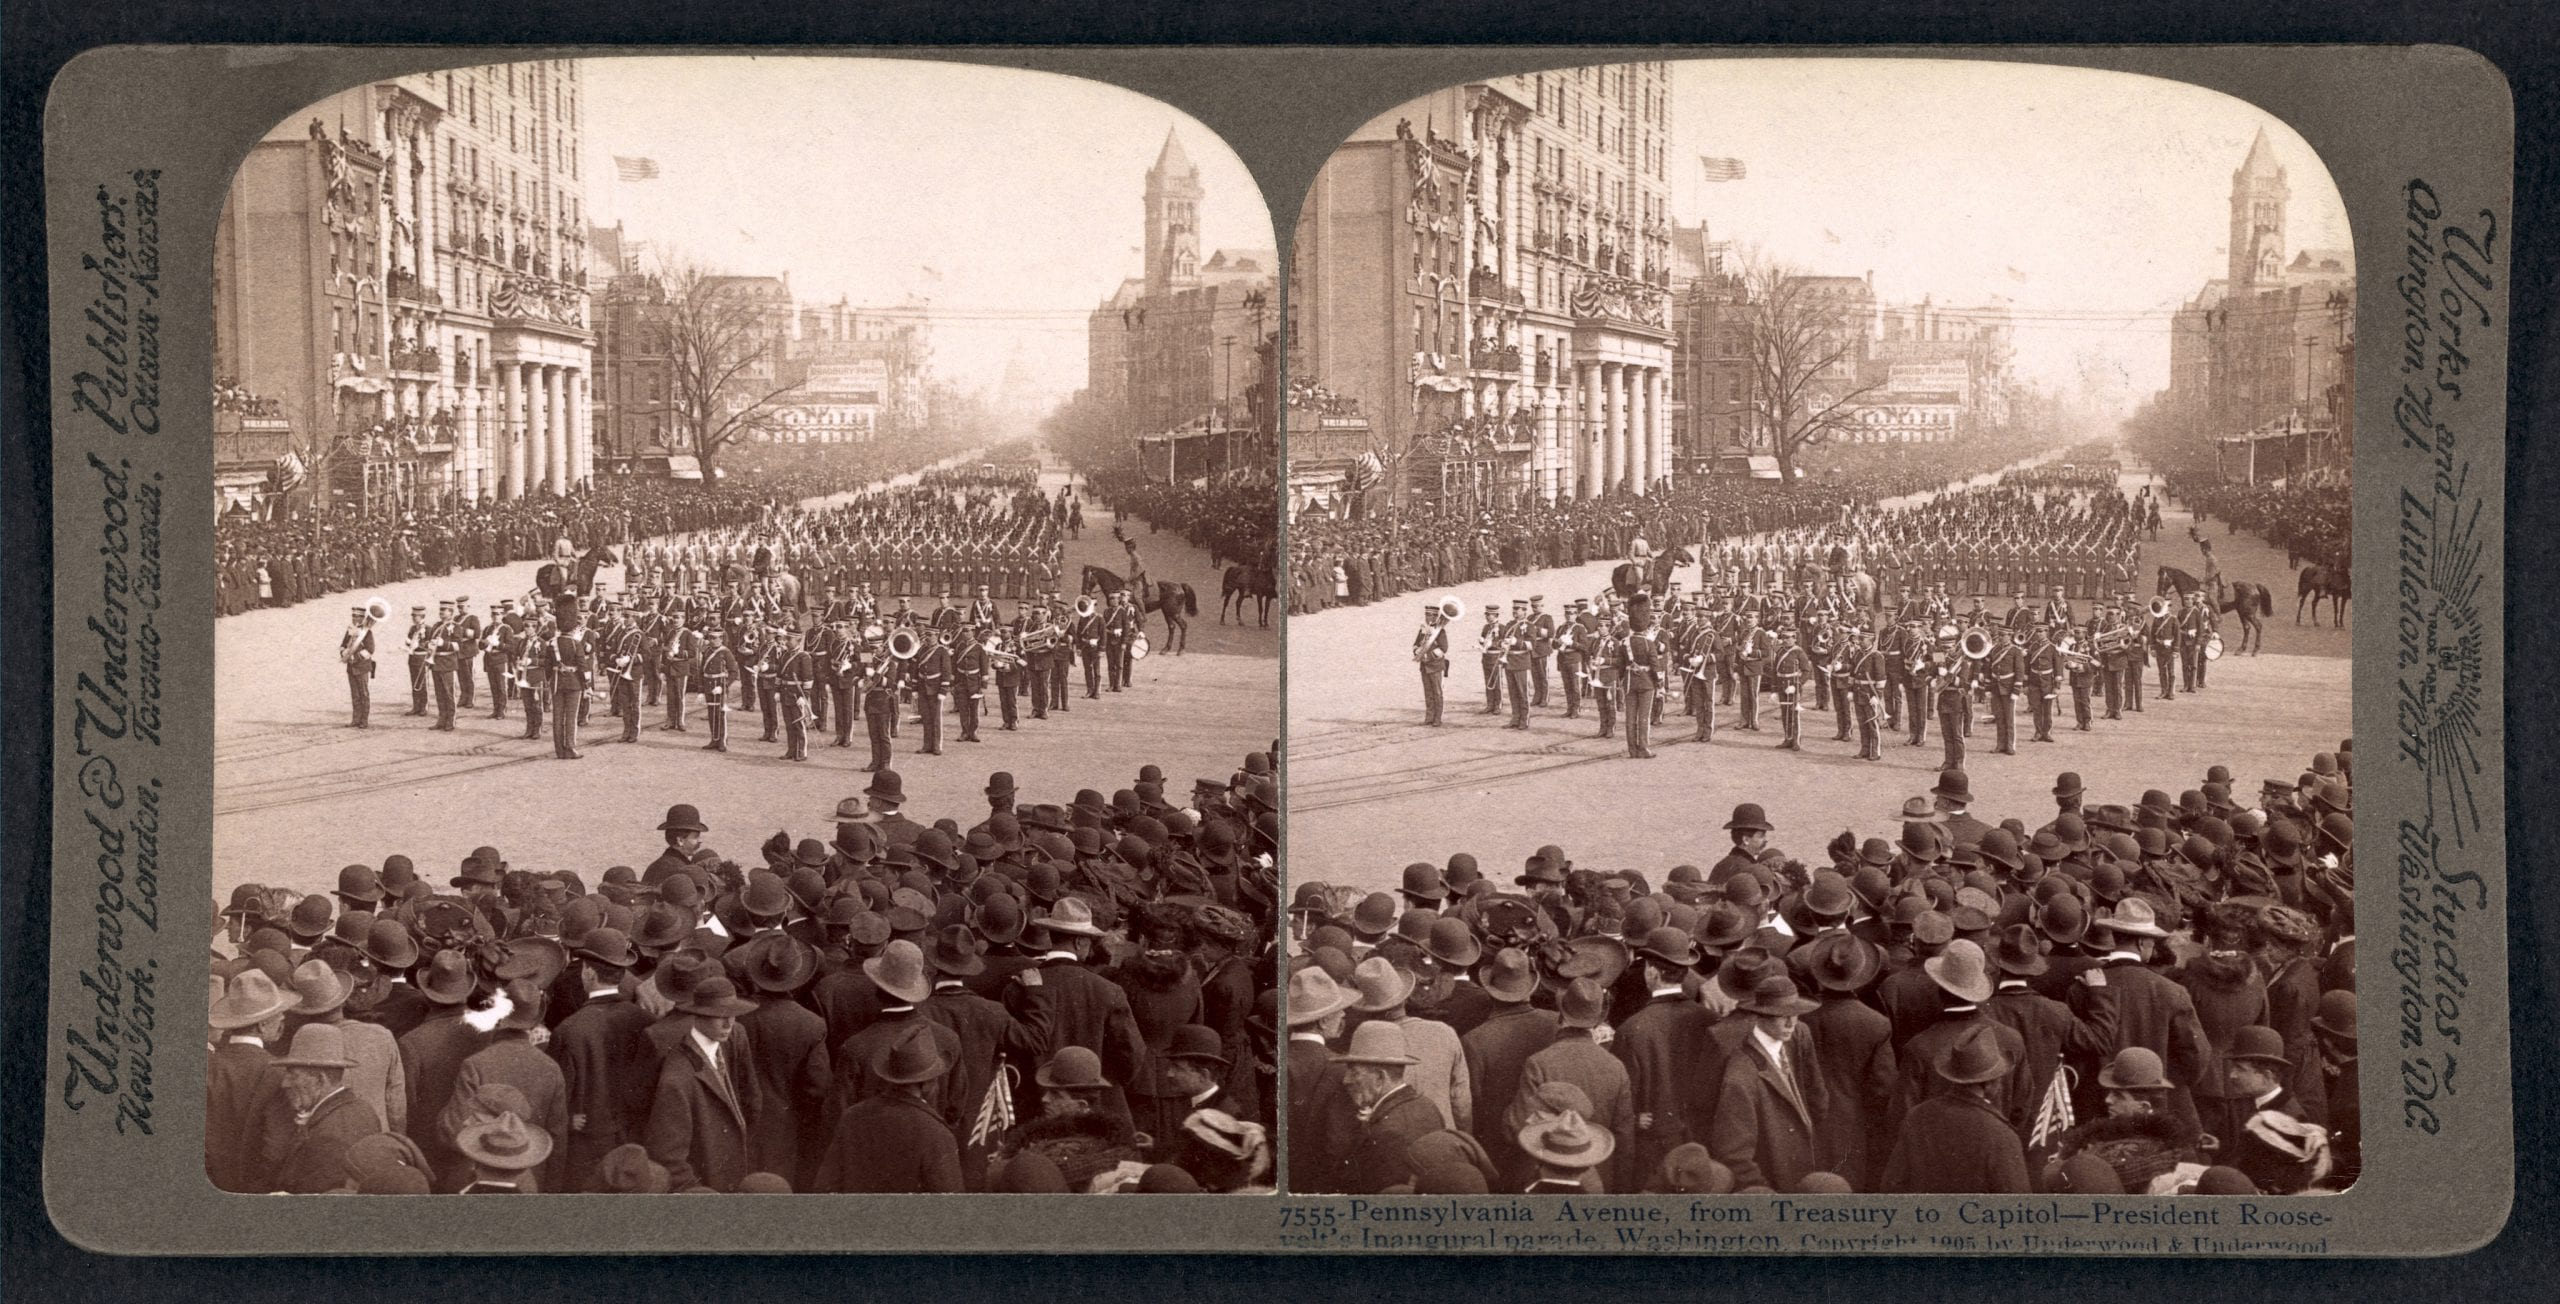 view down Pennsylvania Ave. in 1905 during Roosevelt's inauguration